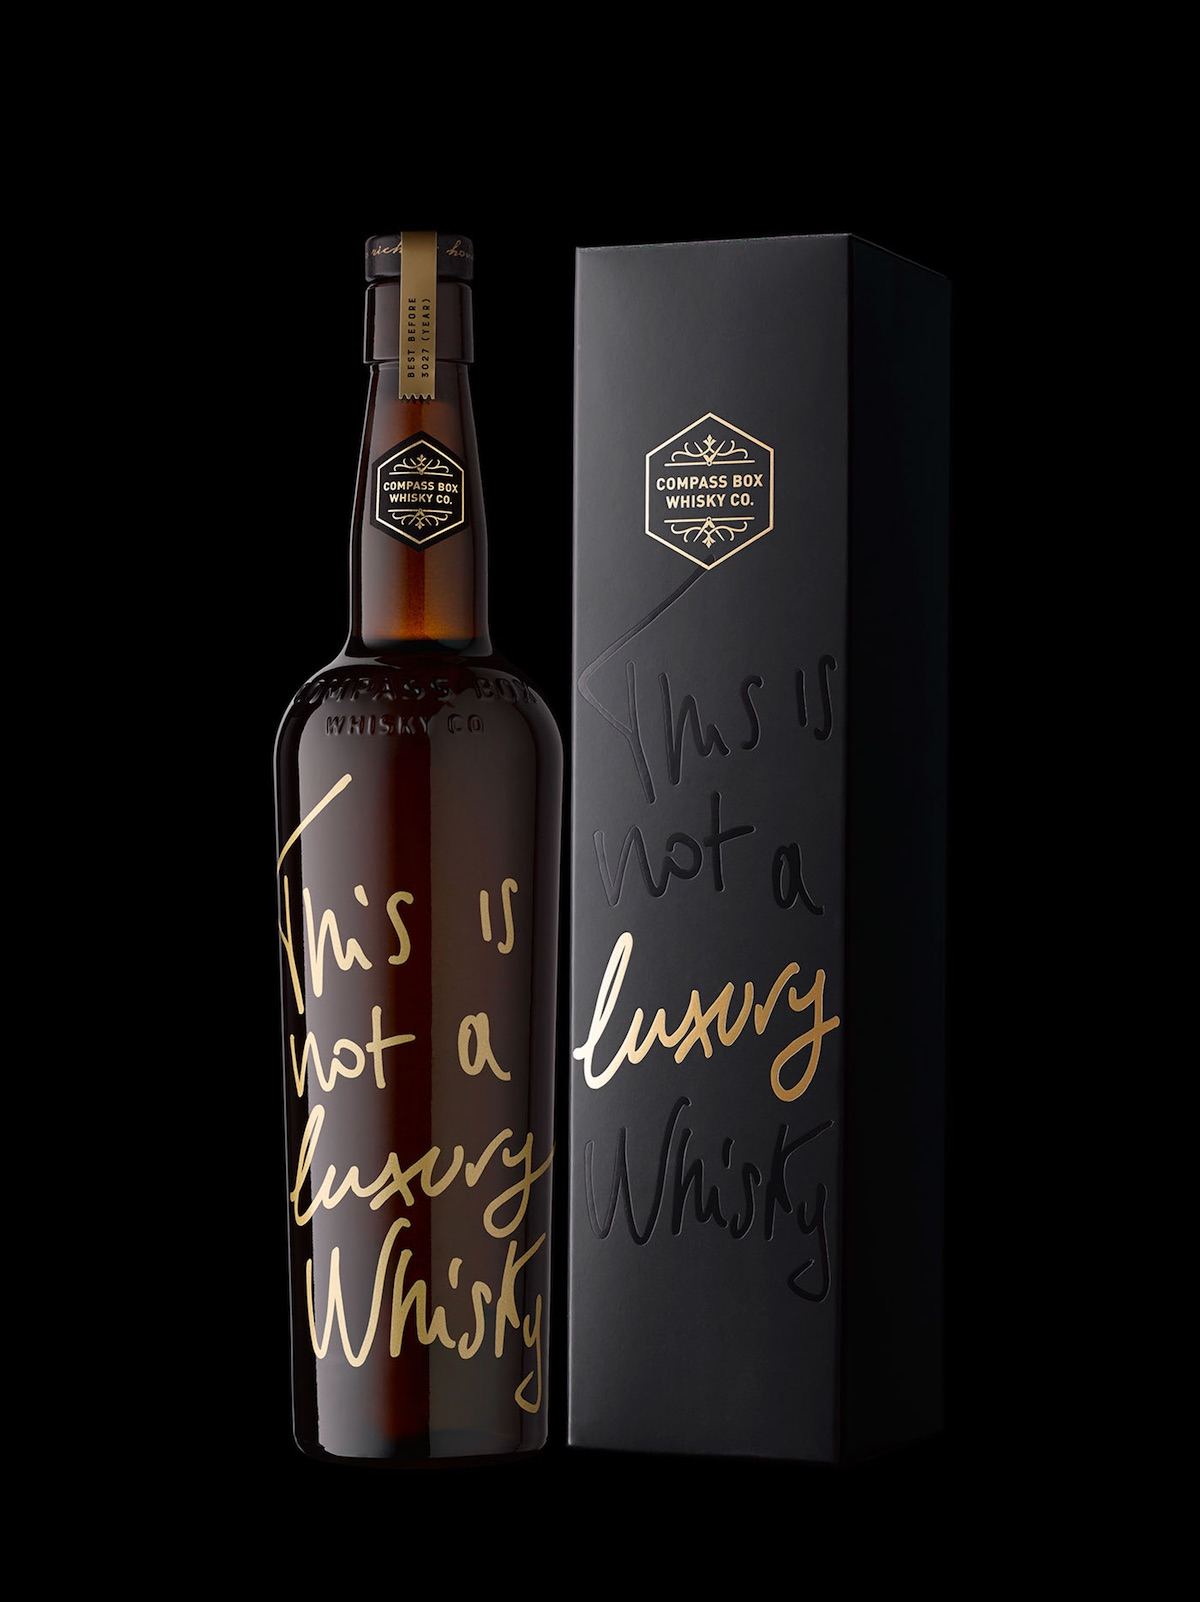 luxury whisky packaging